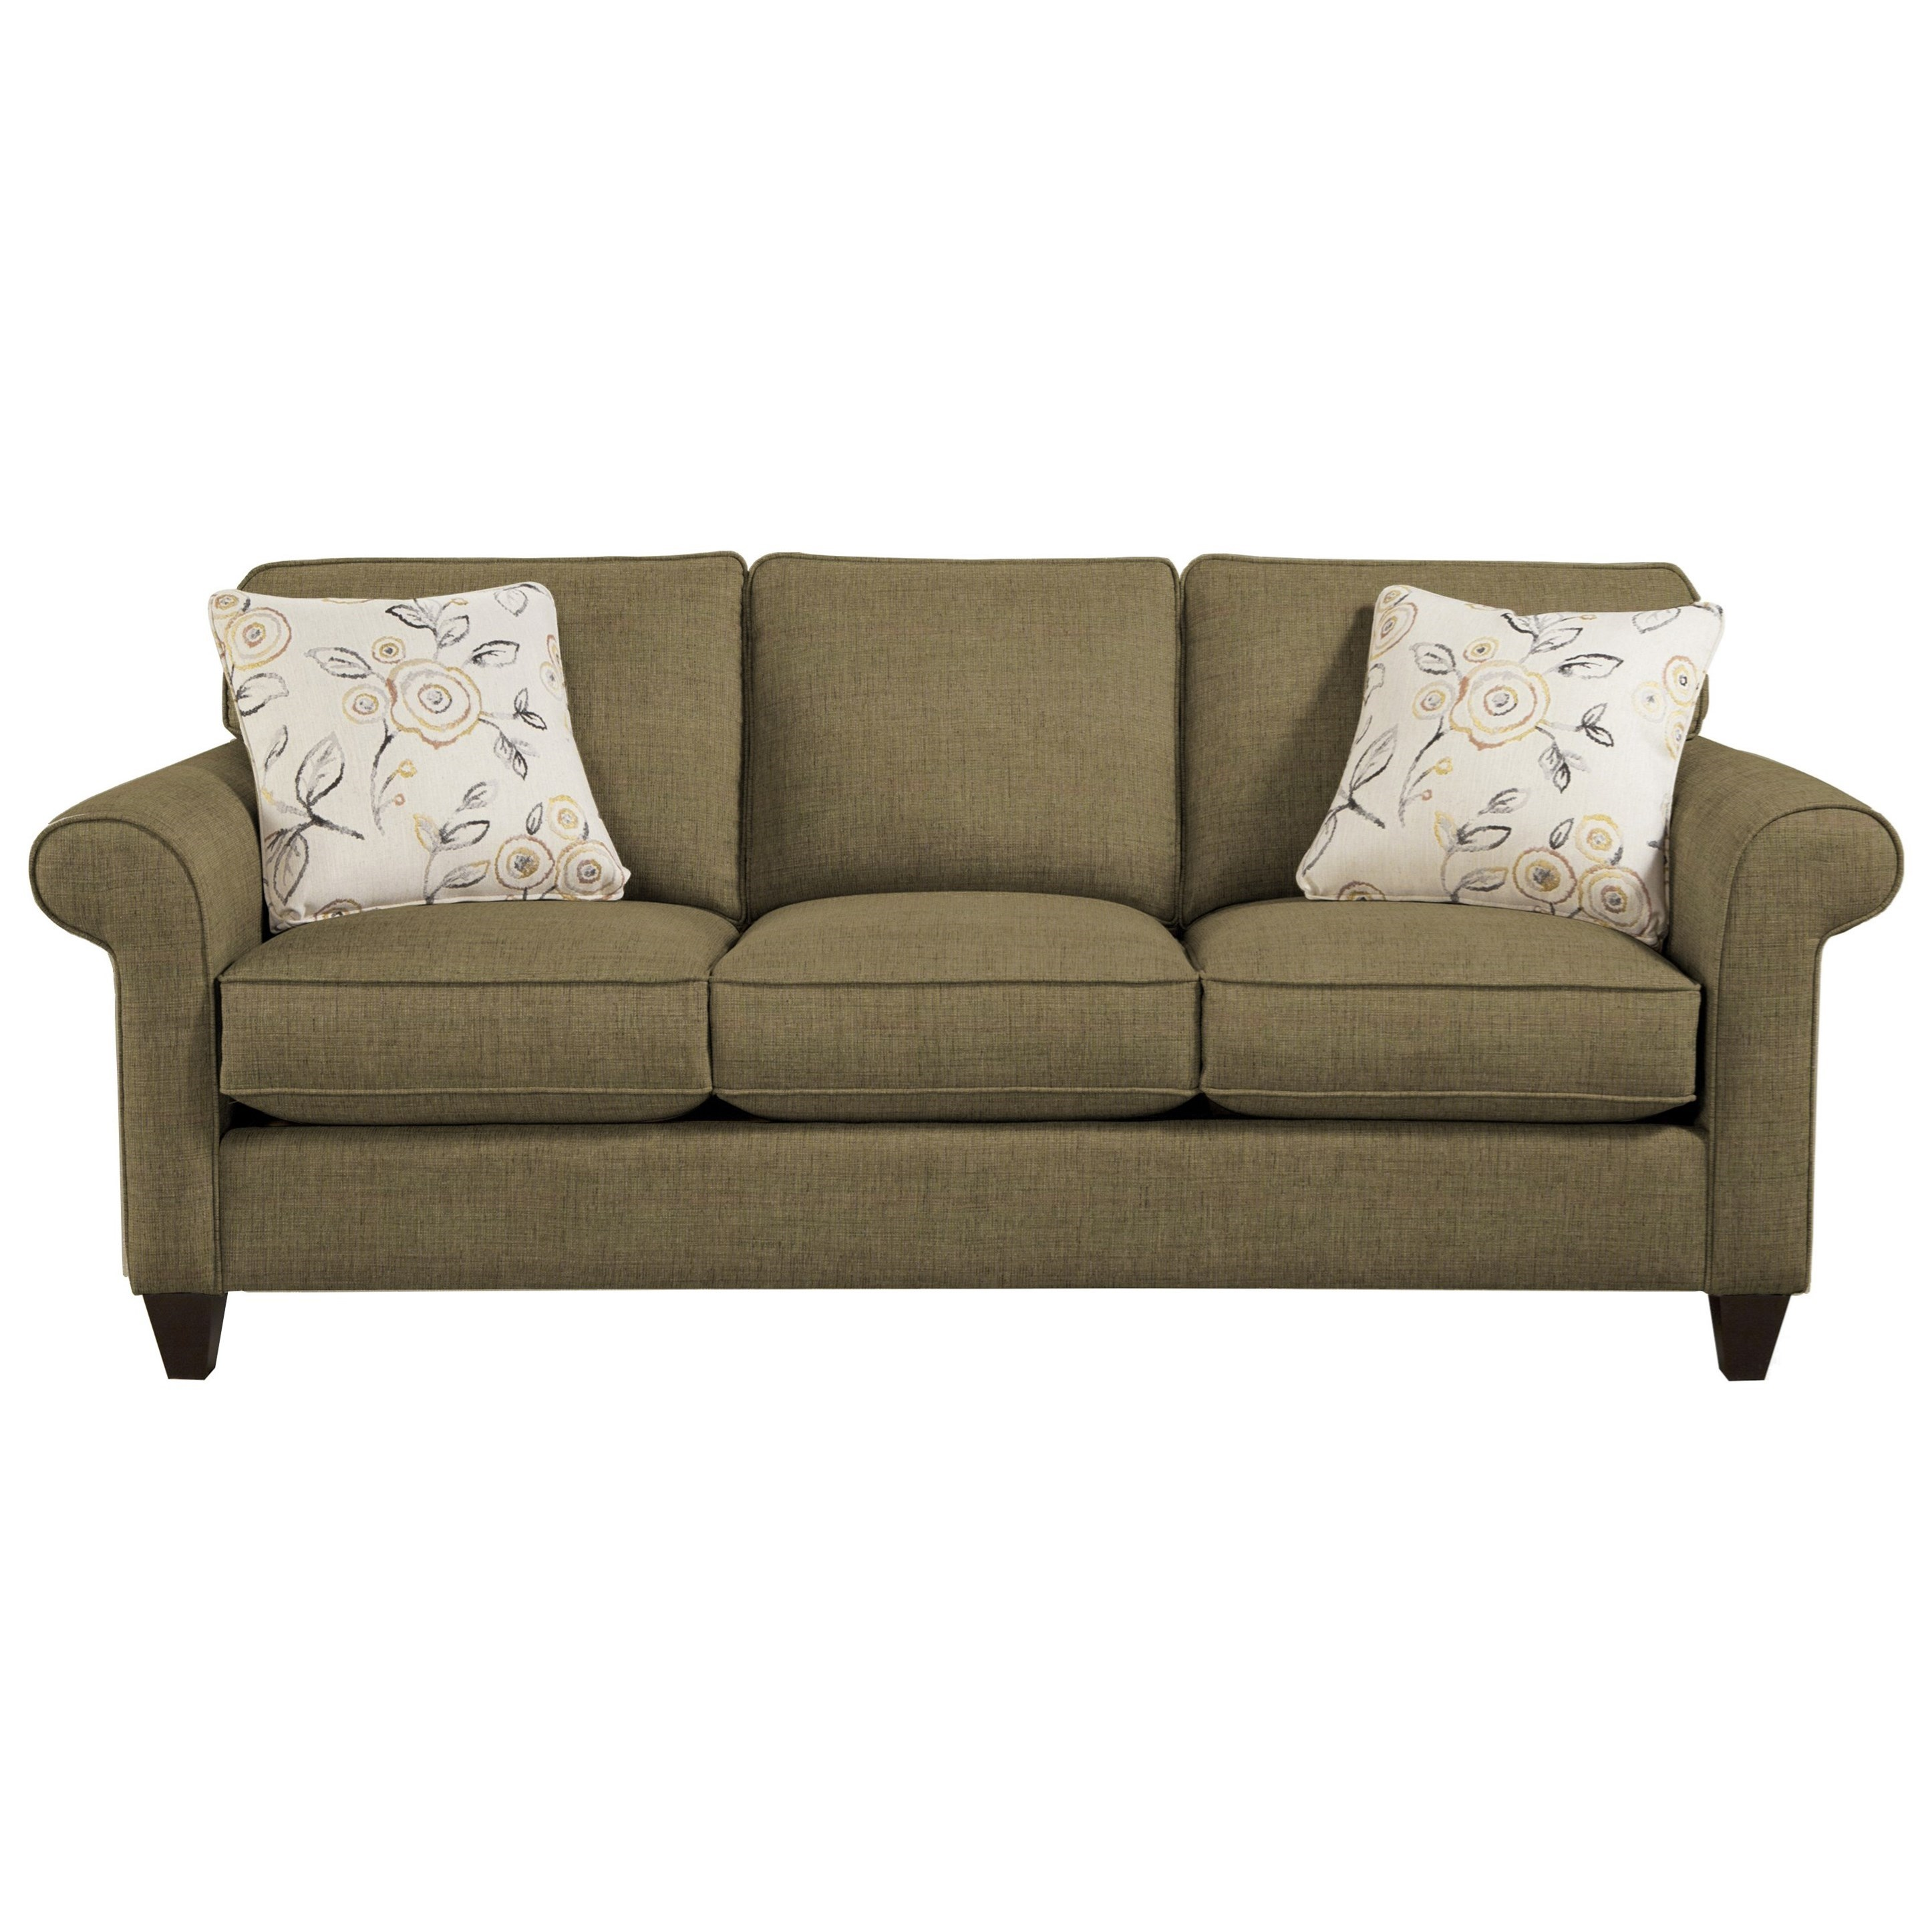 Craftmaster 7421 Sofa - Item Number: 742150-SHANGRILA-15